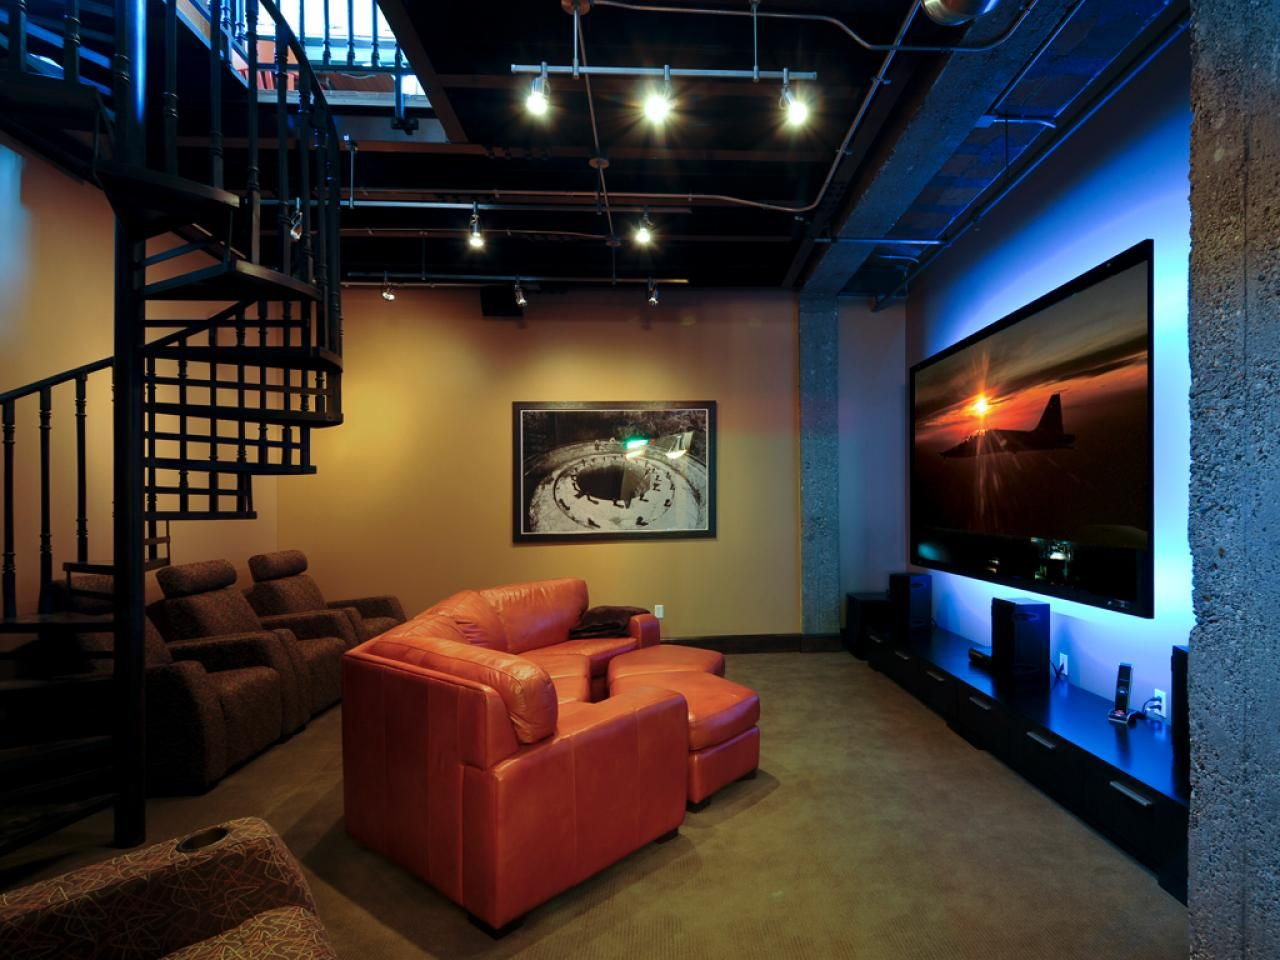 Basement Finishing Ideas And Options Media Room Design Home Theater Seating Home Theater Design